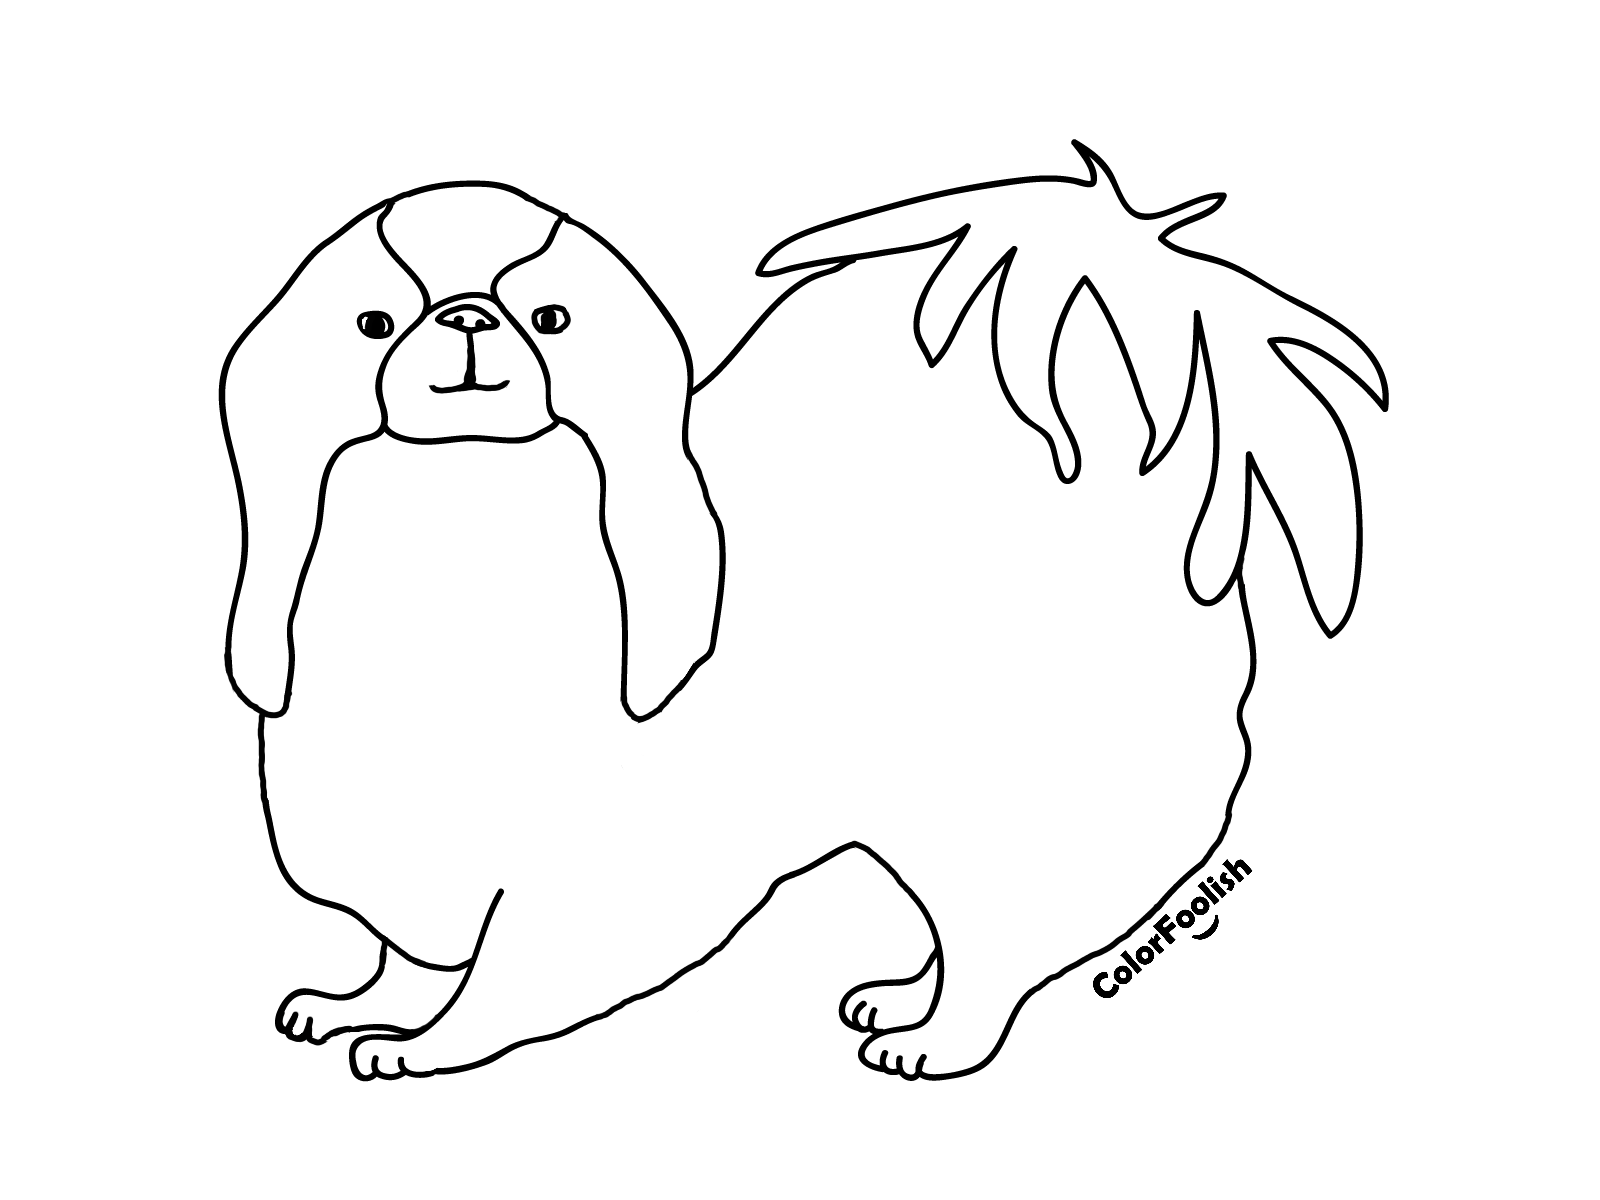 Coloring page of a Japanese chin dog